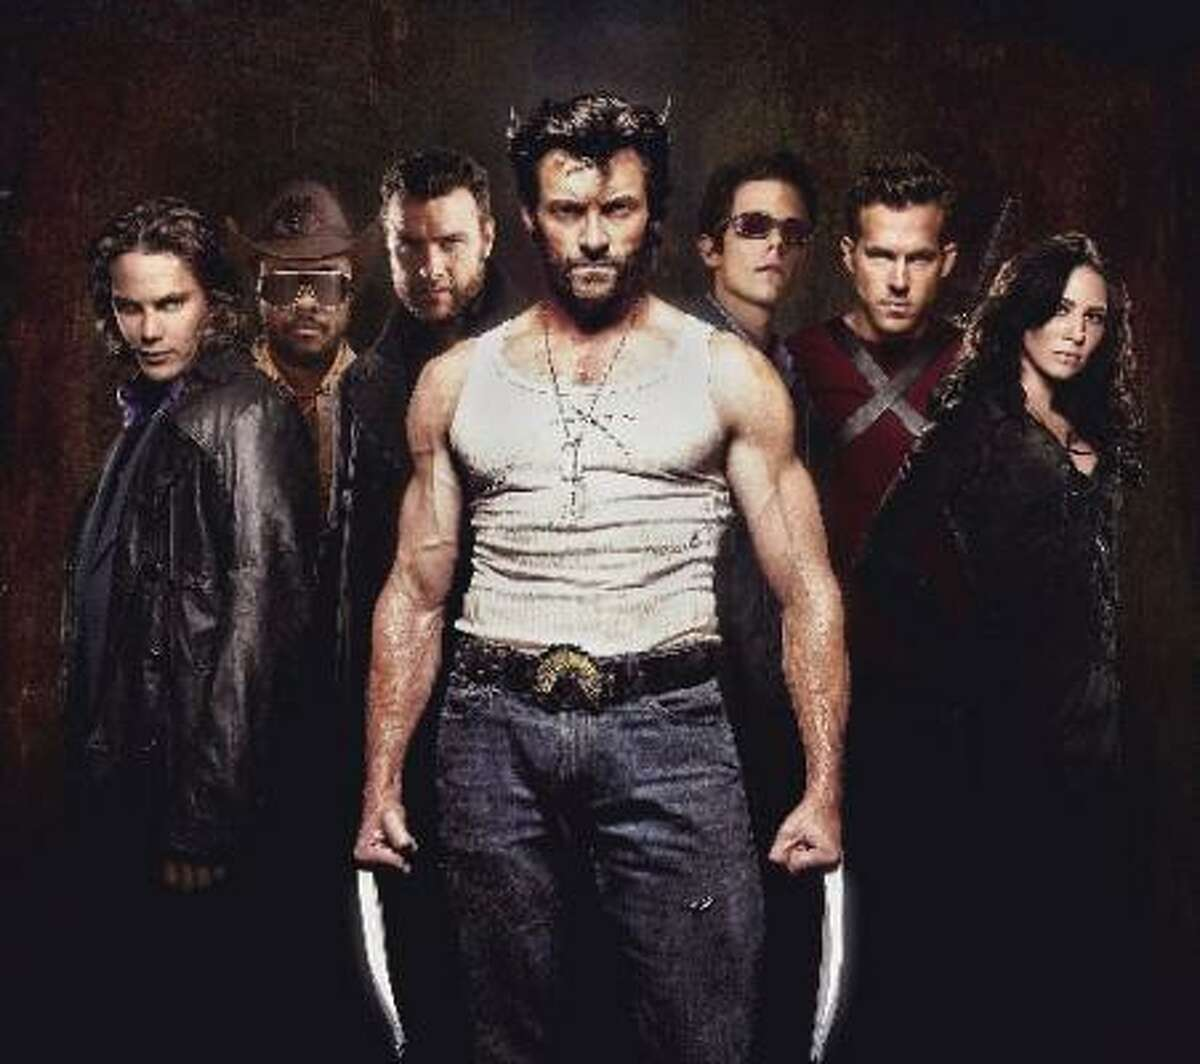 Wolverine and his band of sexy mutants.